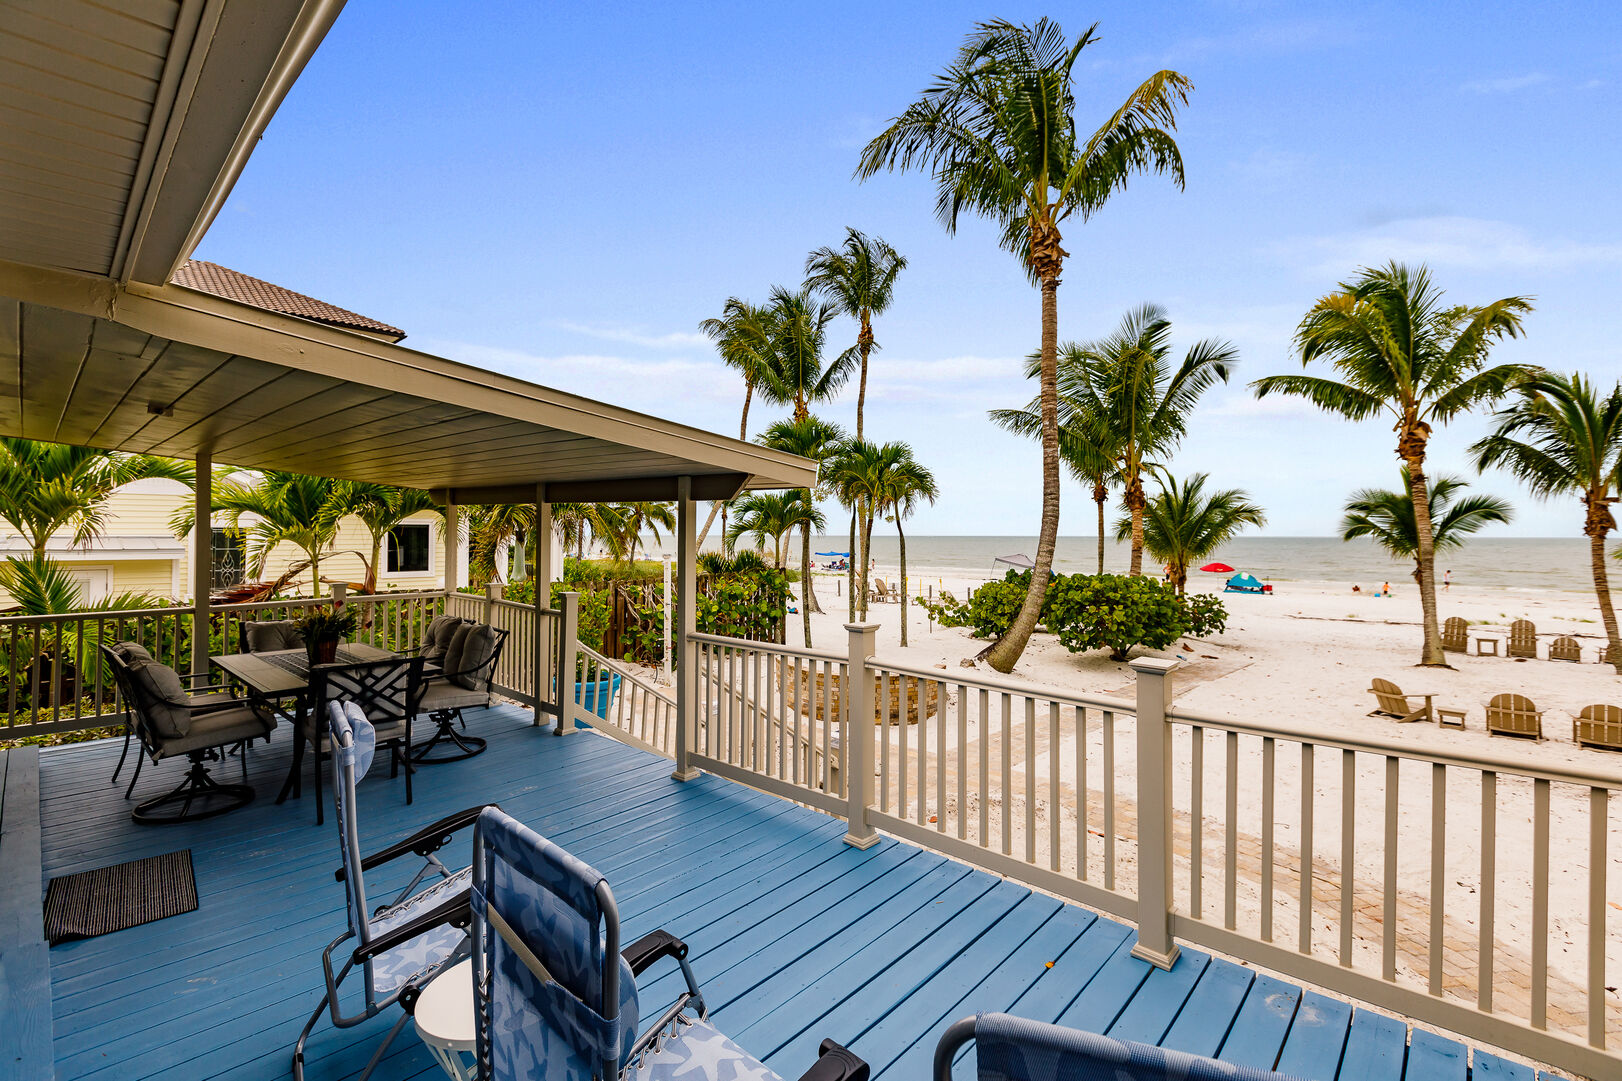 Private Beach House Rental in Florida Back Deck and Beach View